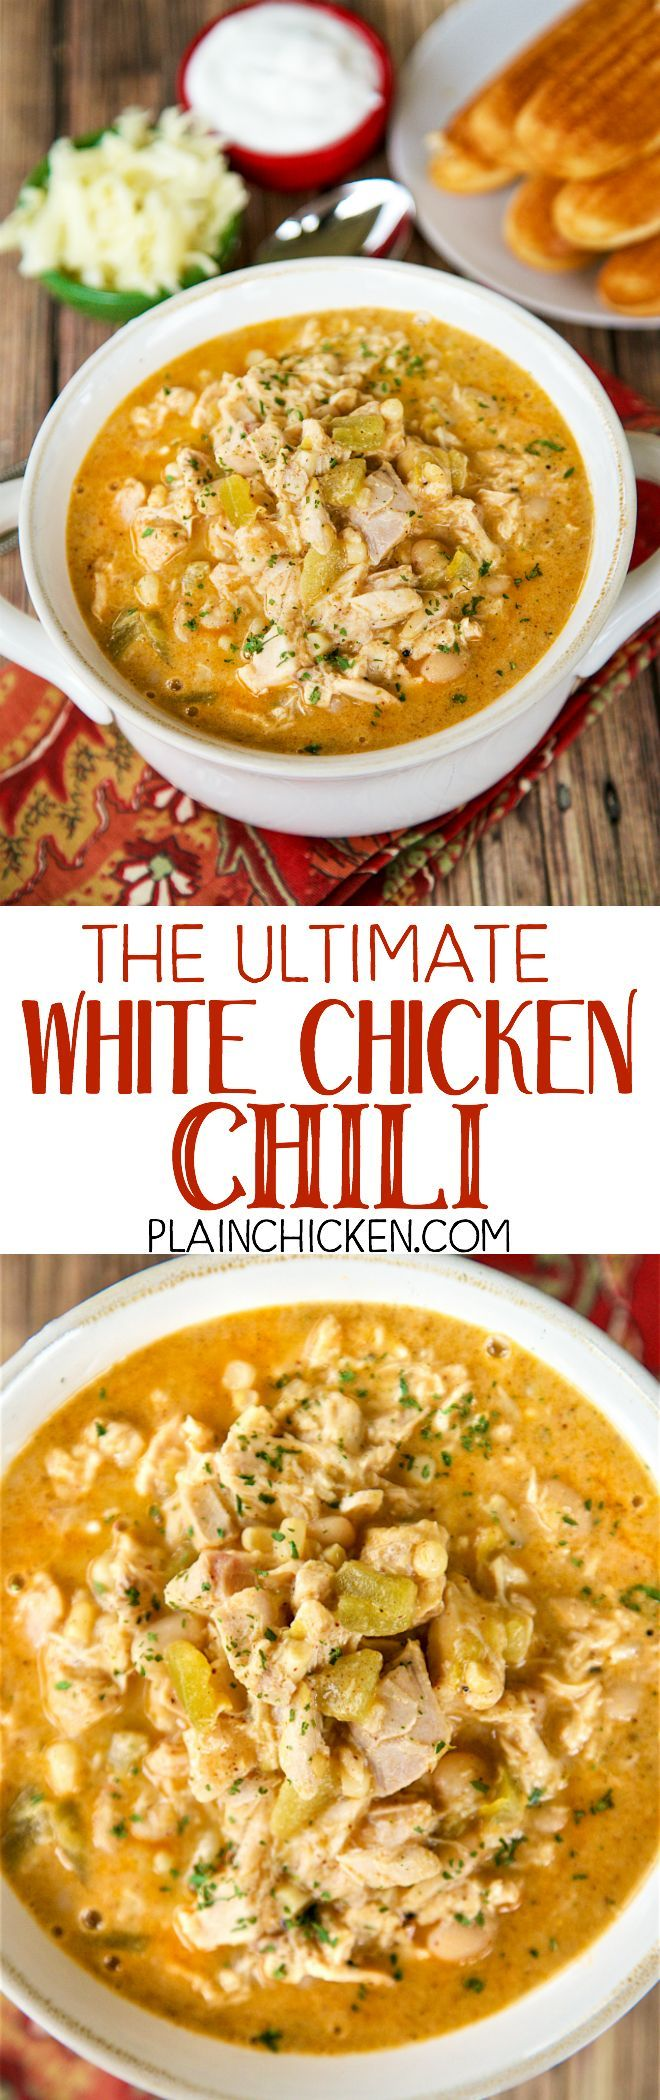 The Ultimate White Chicken Chili - the BEST of the BEST White Chicken Chilis! SO good and ready to eat in under 20 minutes! Rotisserie chicken, white beans, corn, green chilies, chicken broth, onion,  (White Chicken Chili)